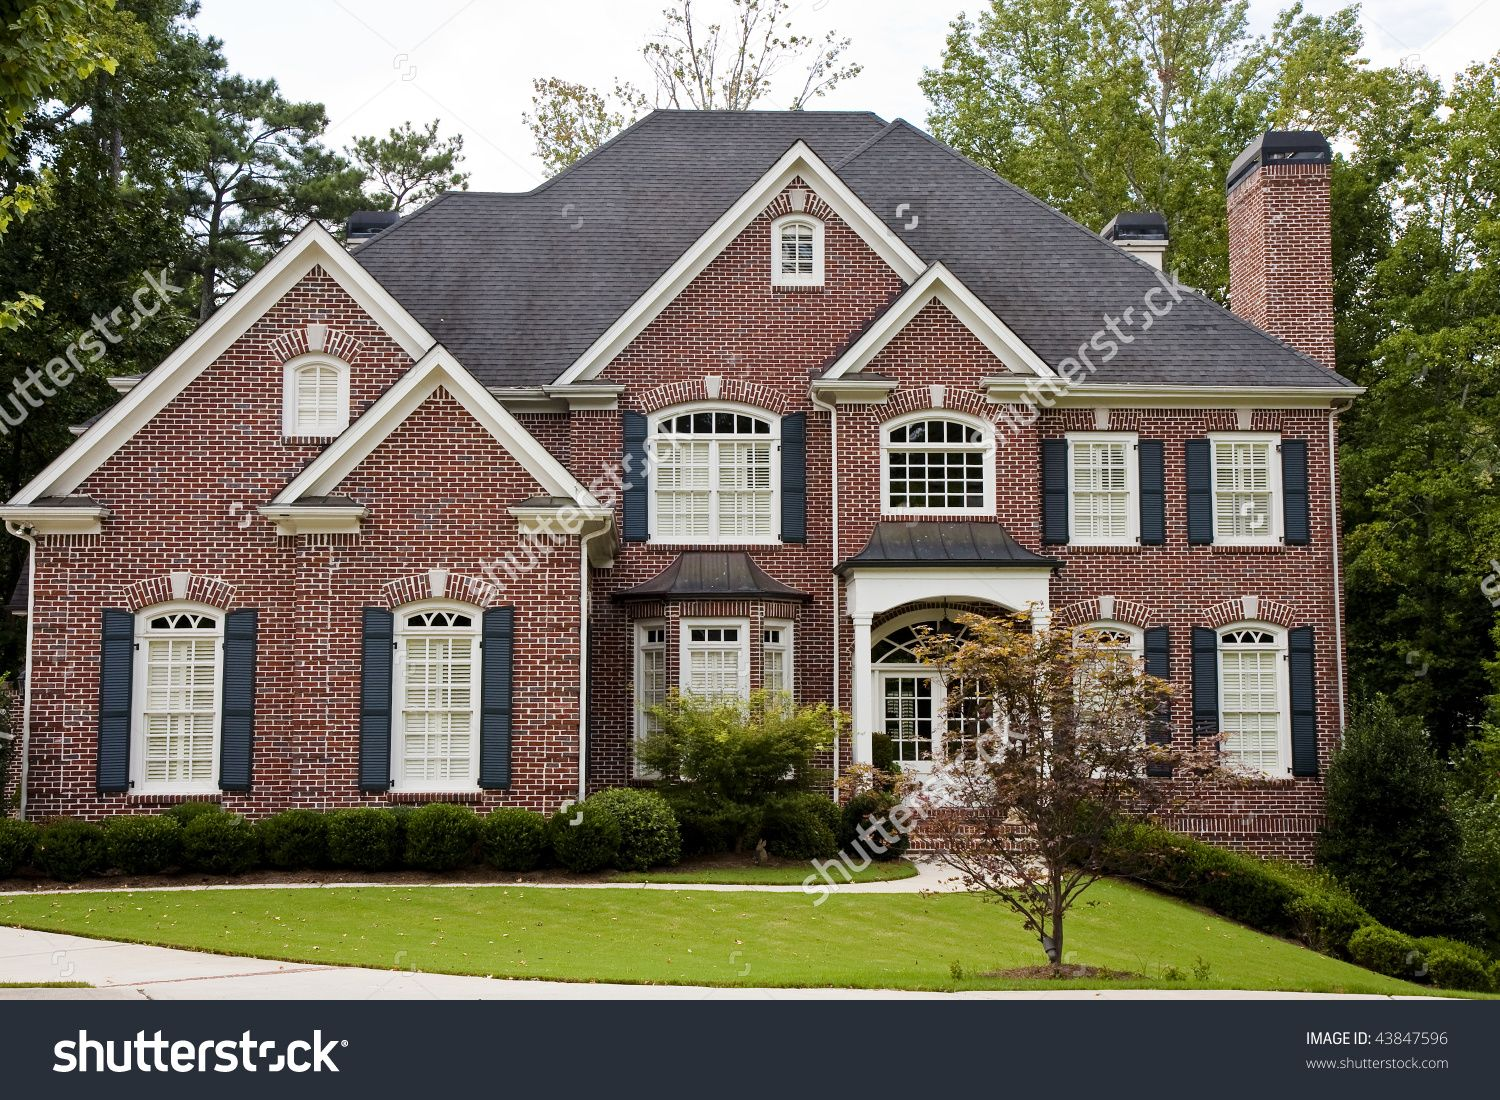 Two story brick house google search architecture for 2 story brick house plans